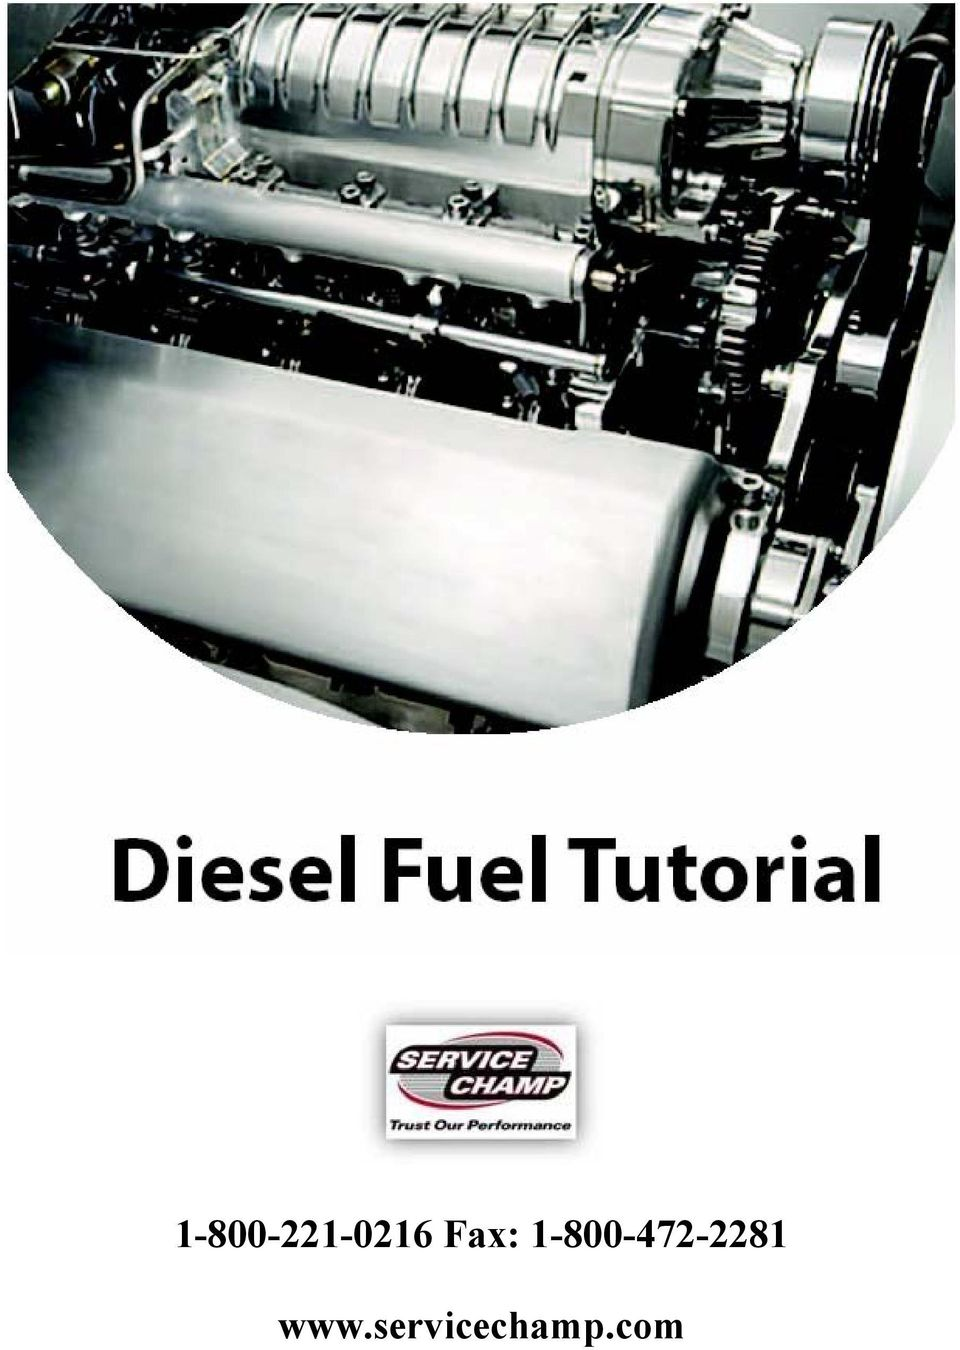 Pdf 66 Mustang Fuel Filter Location 2 Service Champ Part Interval Every 30000 Miles Chevrolet Liter Description And Operation The Element Separates Particles Larger Than